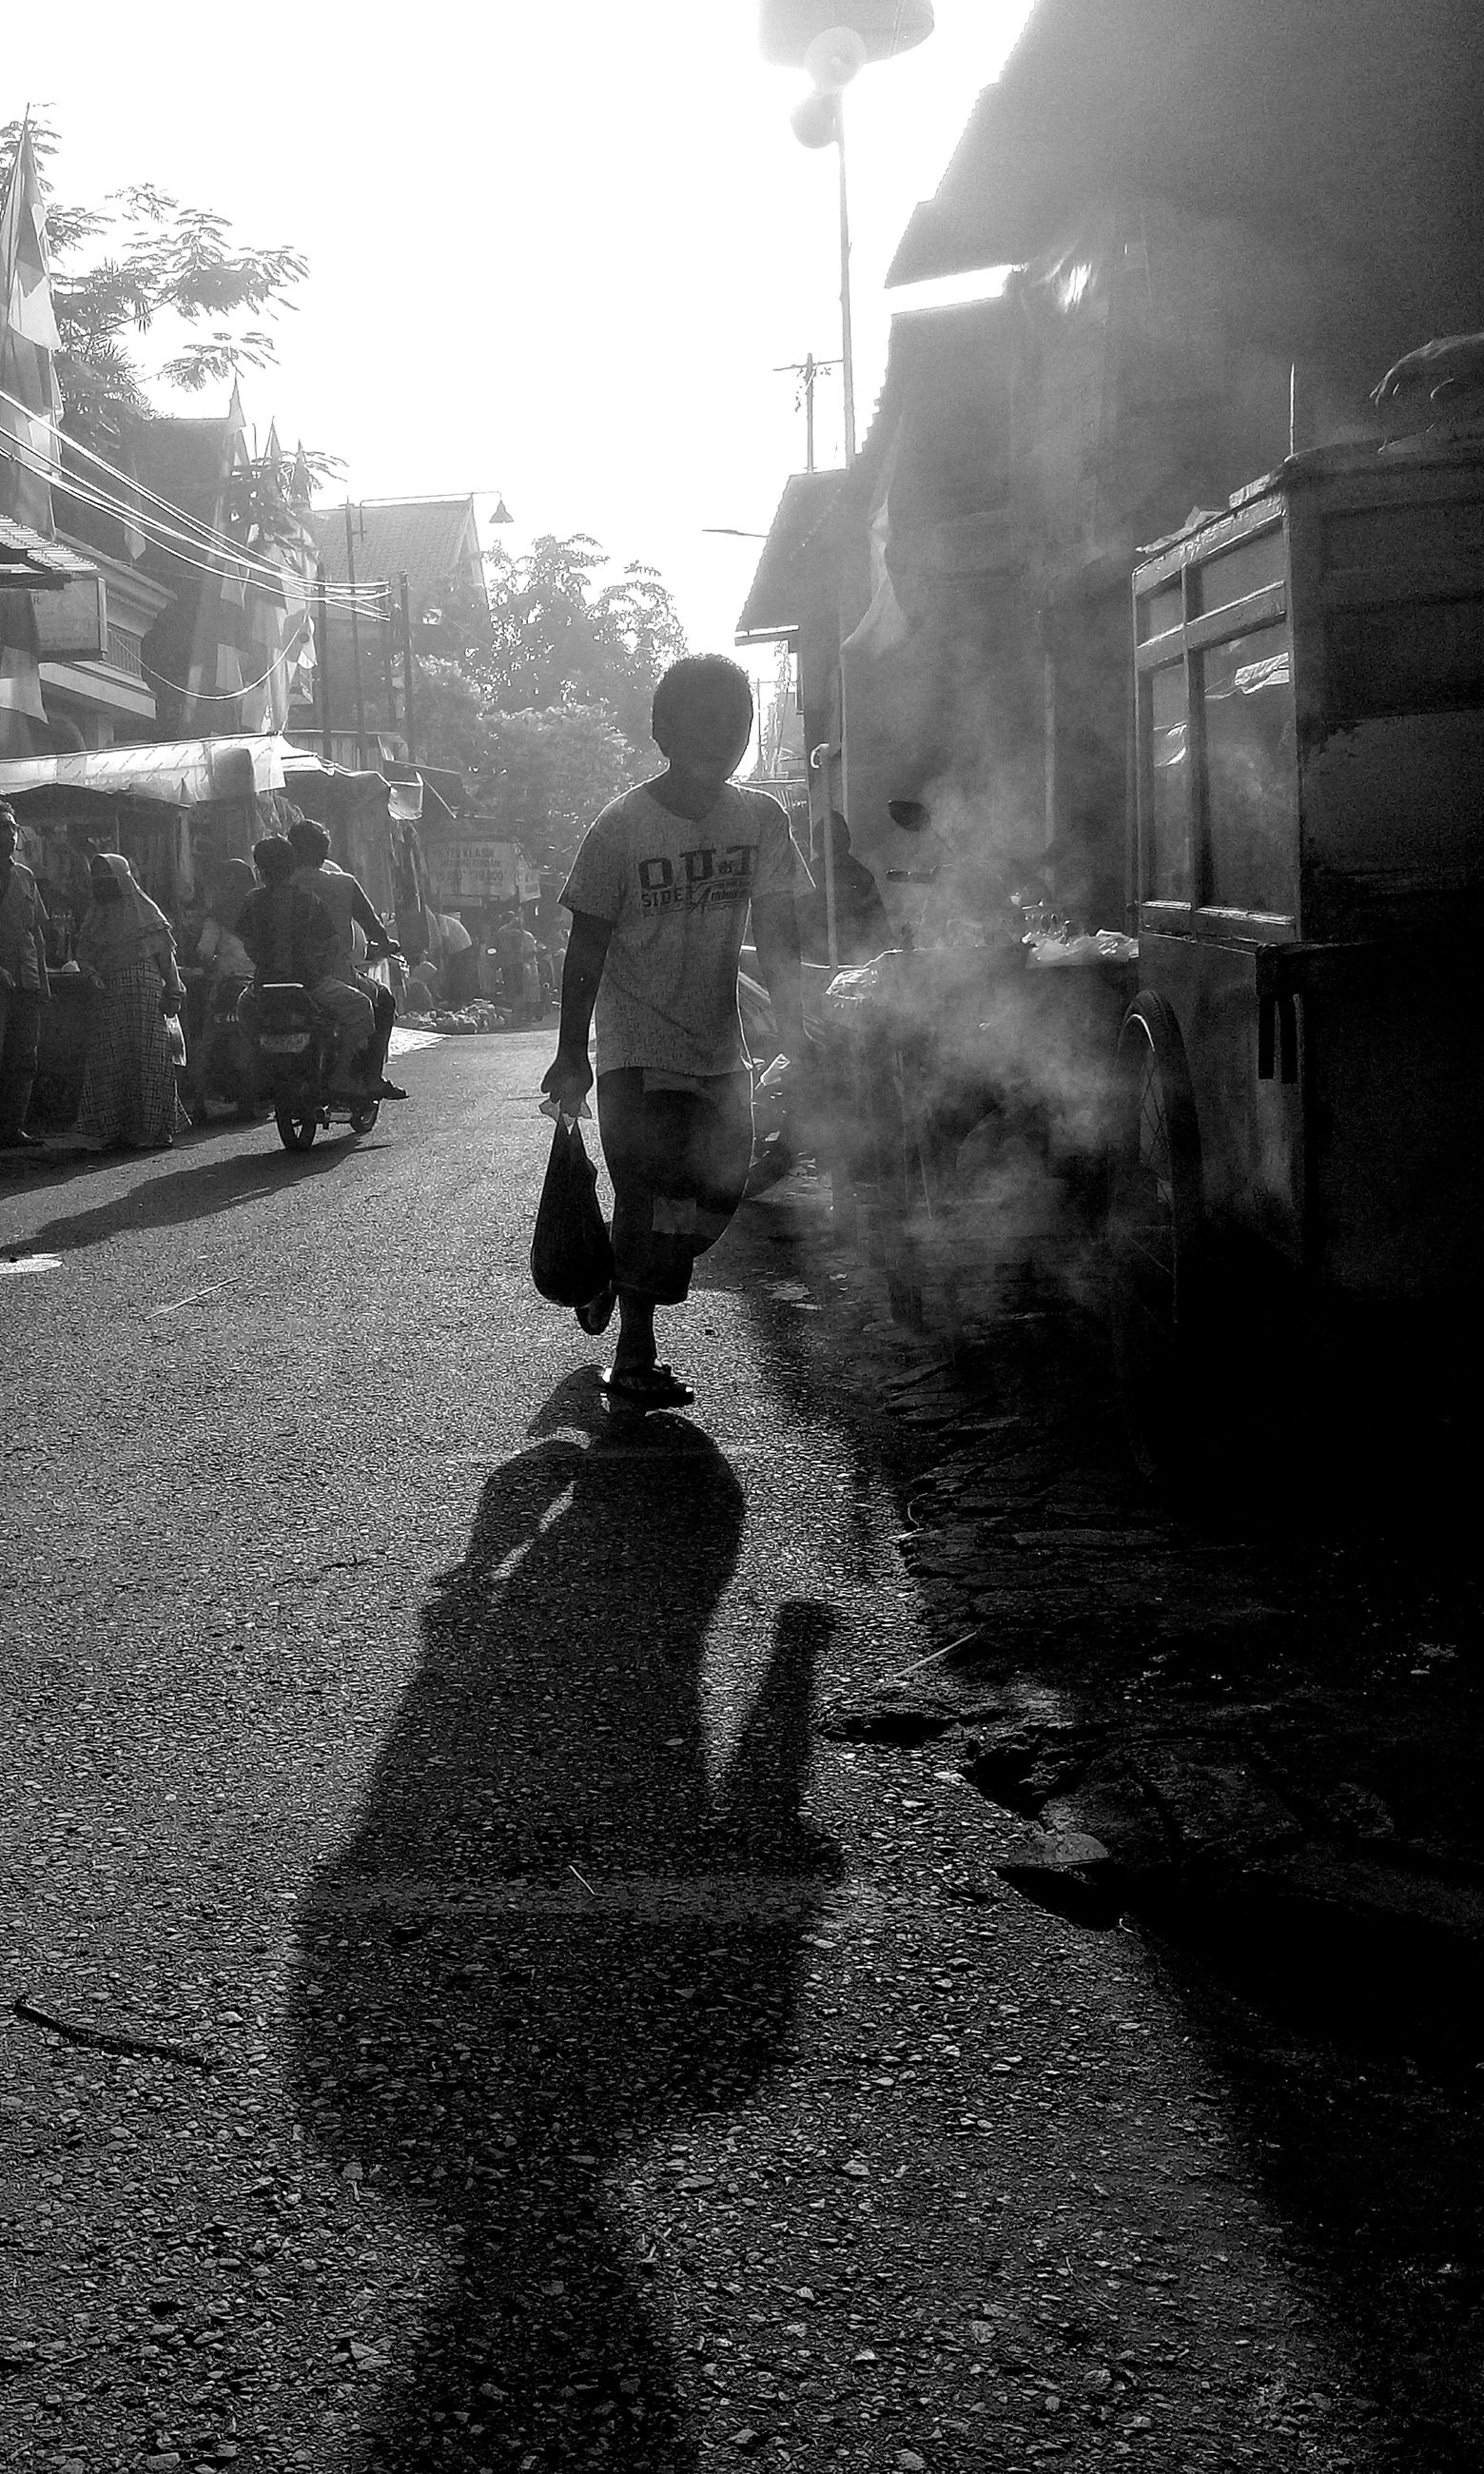 black, transportation, black and white, city, street, architecture, monochrome, mode of transportation, darkness, road, monochrome photography, building exterior, one person, land vehicle, white, sunlight, men, nature, built structure, motor vehicle, car, full length, sky, day, walking, adult, infrastructure, lifestyles, rear view, city life, city street, shadow, outdoors, motion, light, smoke, vehicle